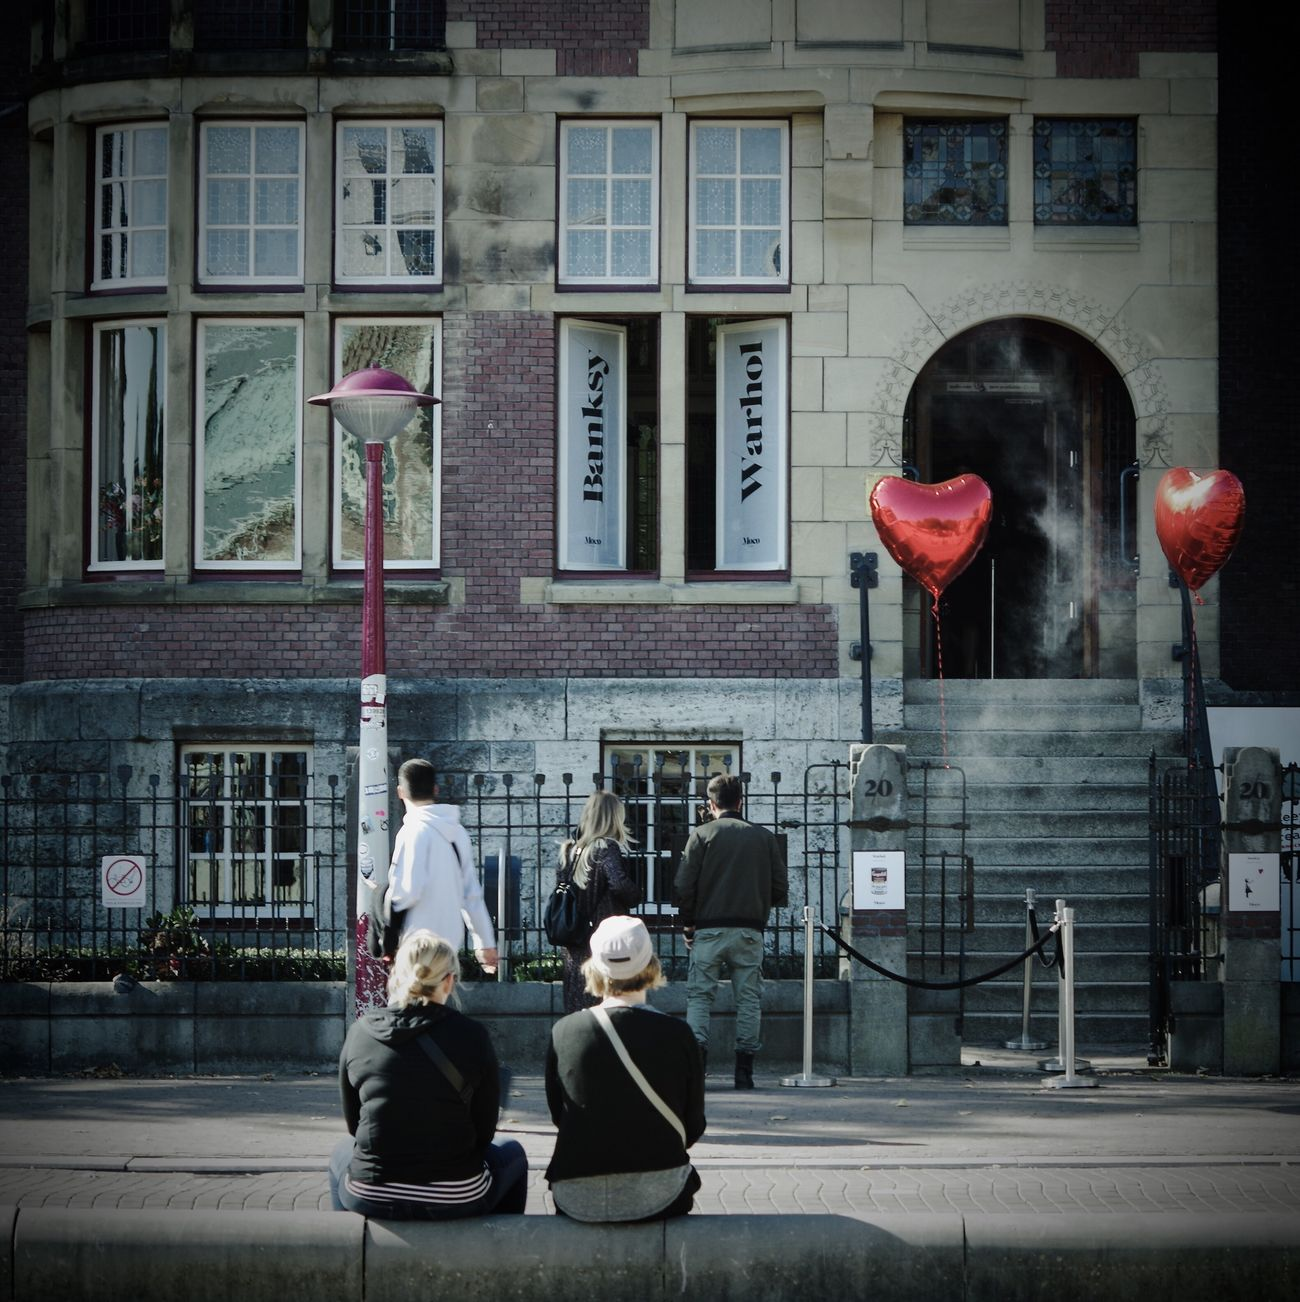 Streetphotography Two People Exhibition Banksy Warhol Amsterdam Red Heart